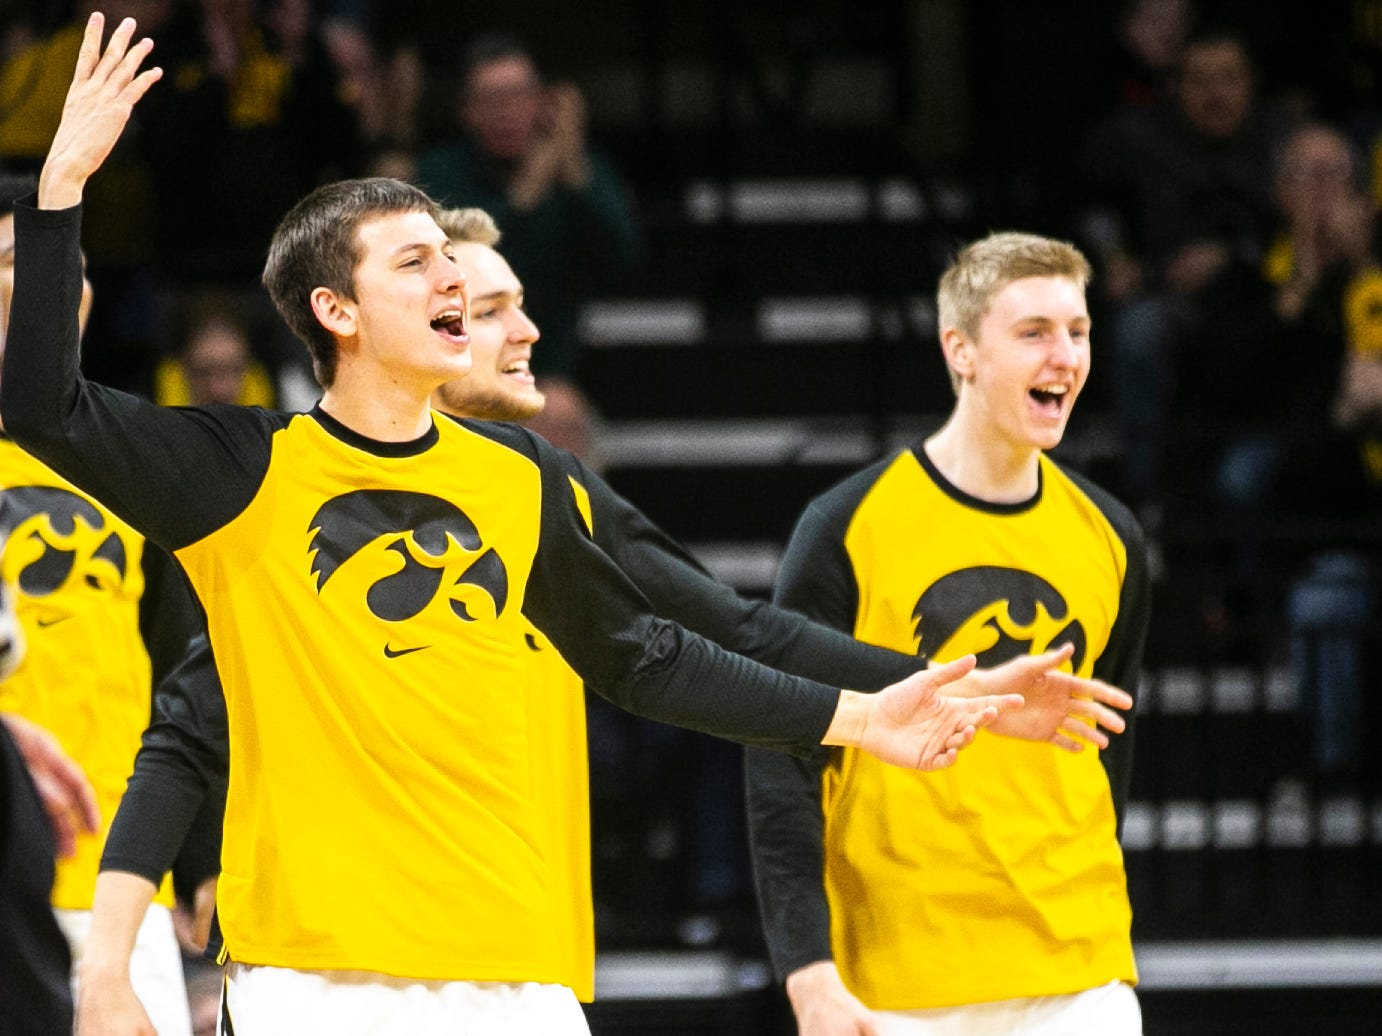 Iowa guard Austin Ash celebrates during a NCAA Big Ten Conference men's basketball game on Friday, Feb. 1, 2019, at Carver-Hawkeye Arena in Iowa City, Iowa.